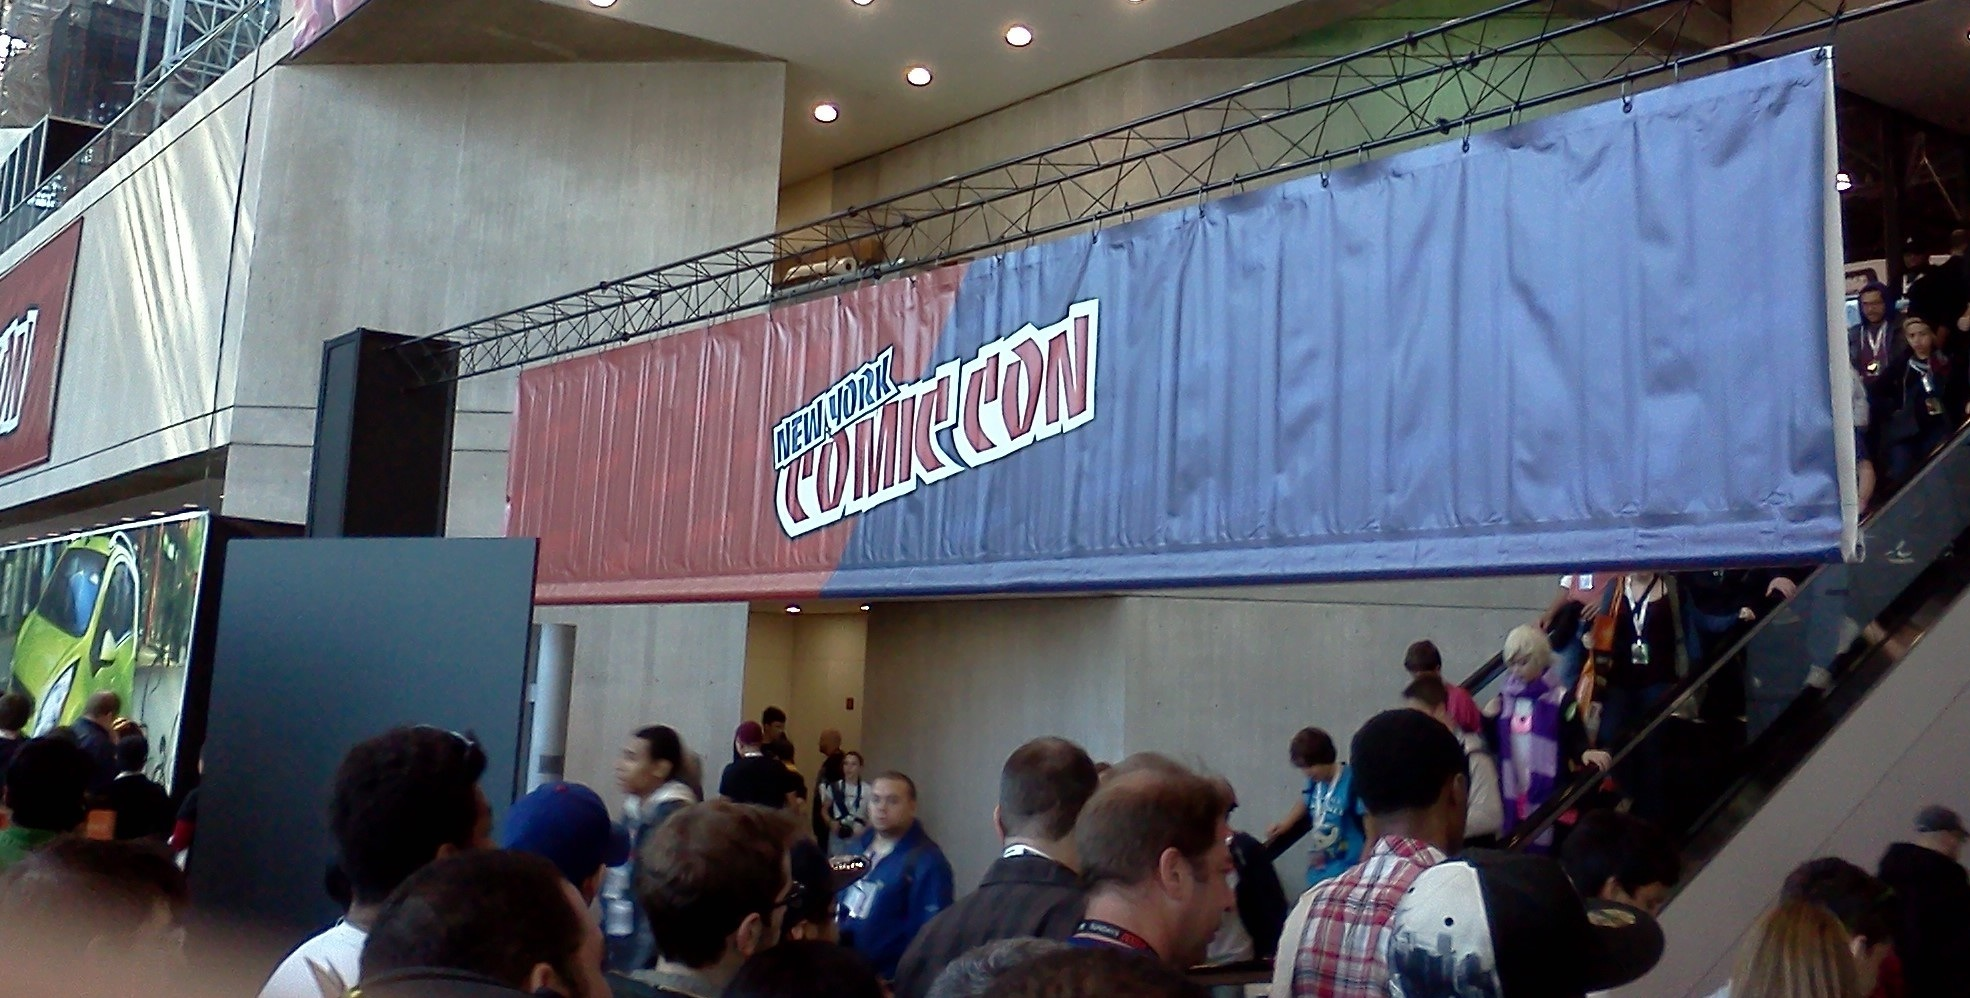 New York Comic Con Sign